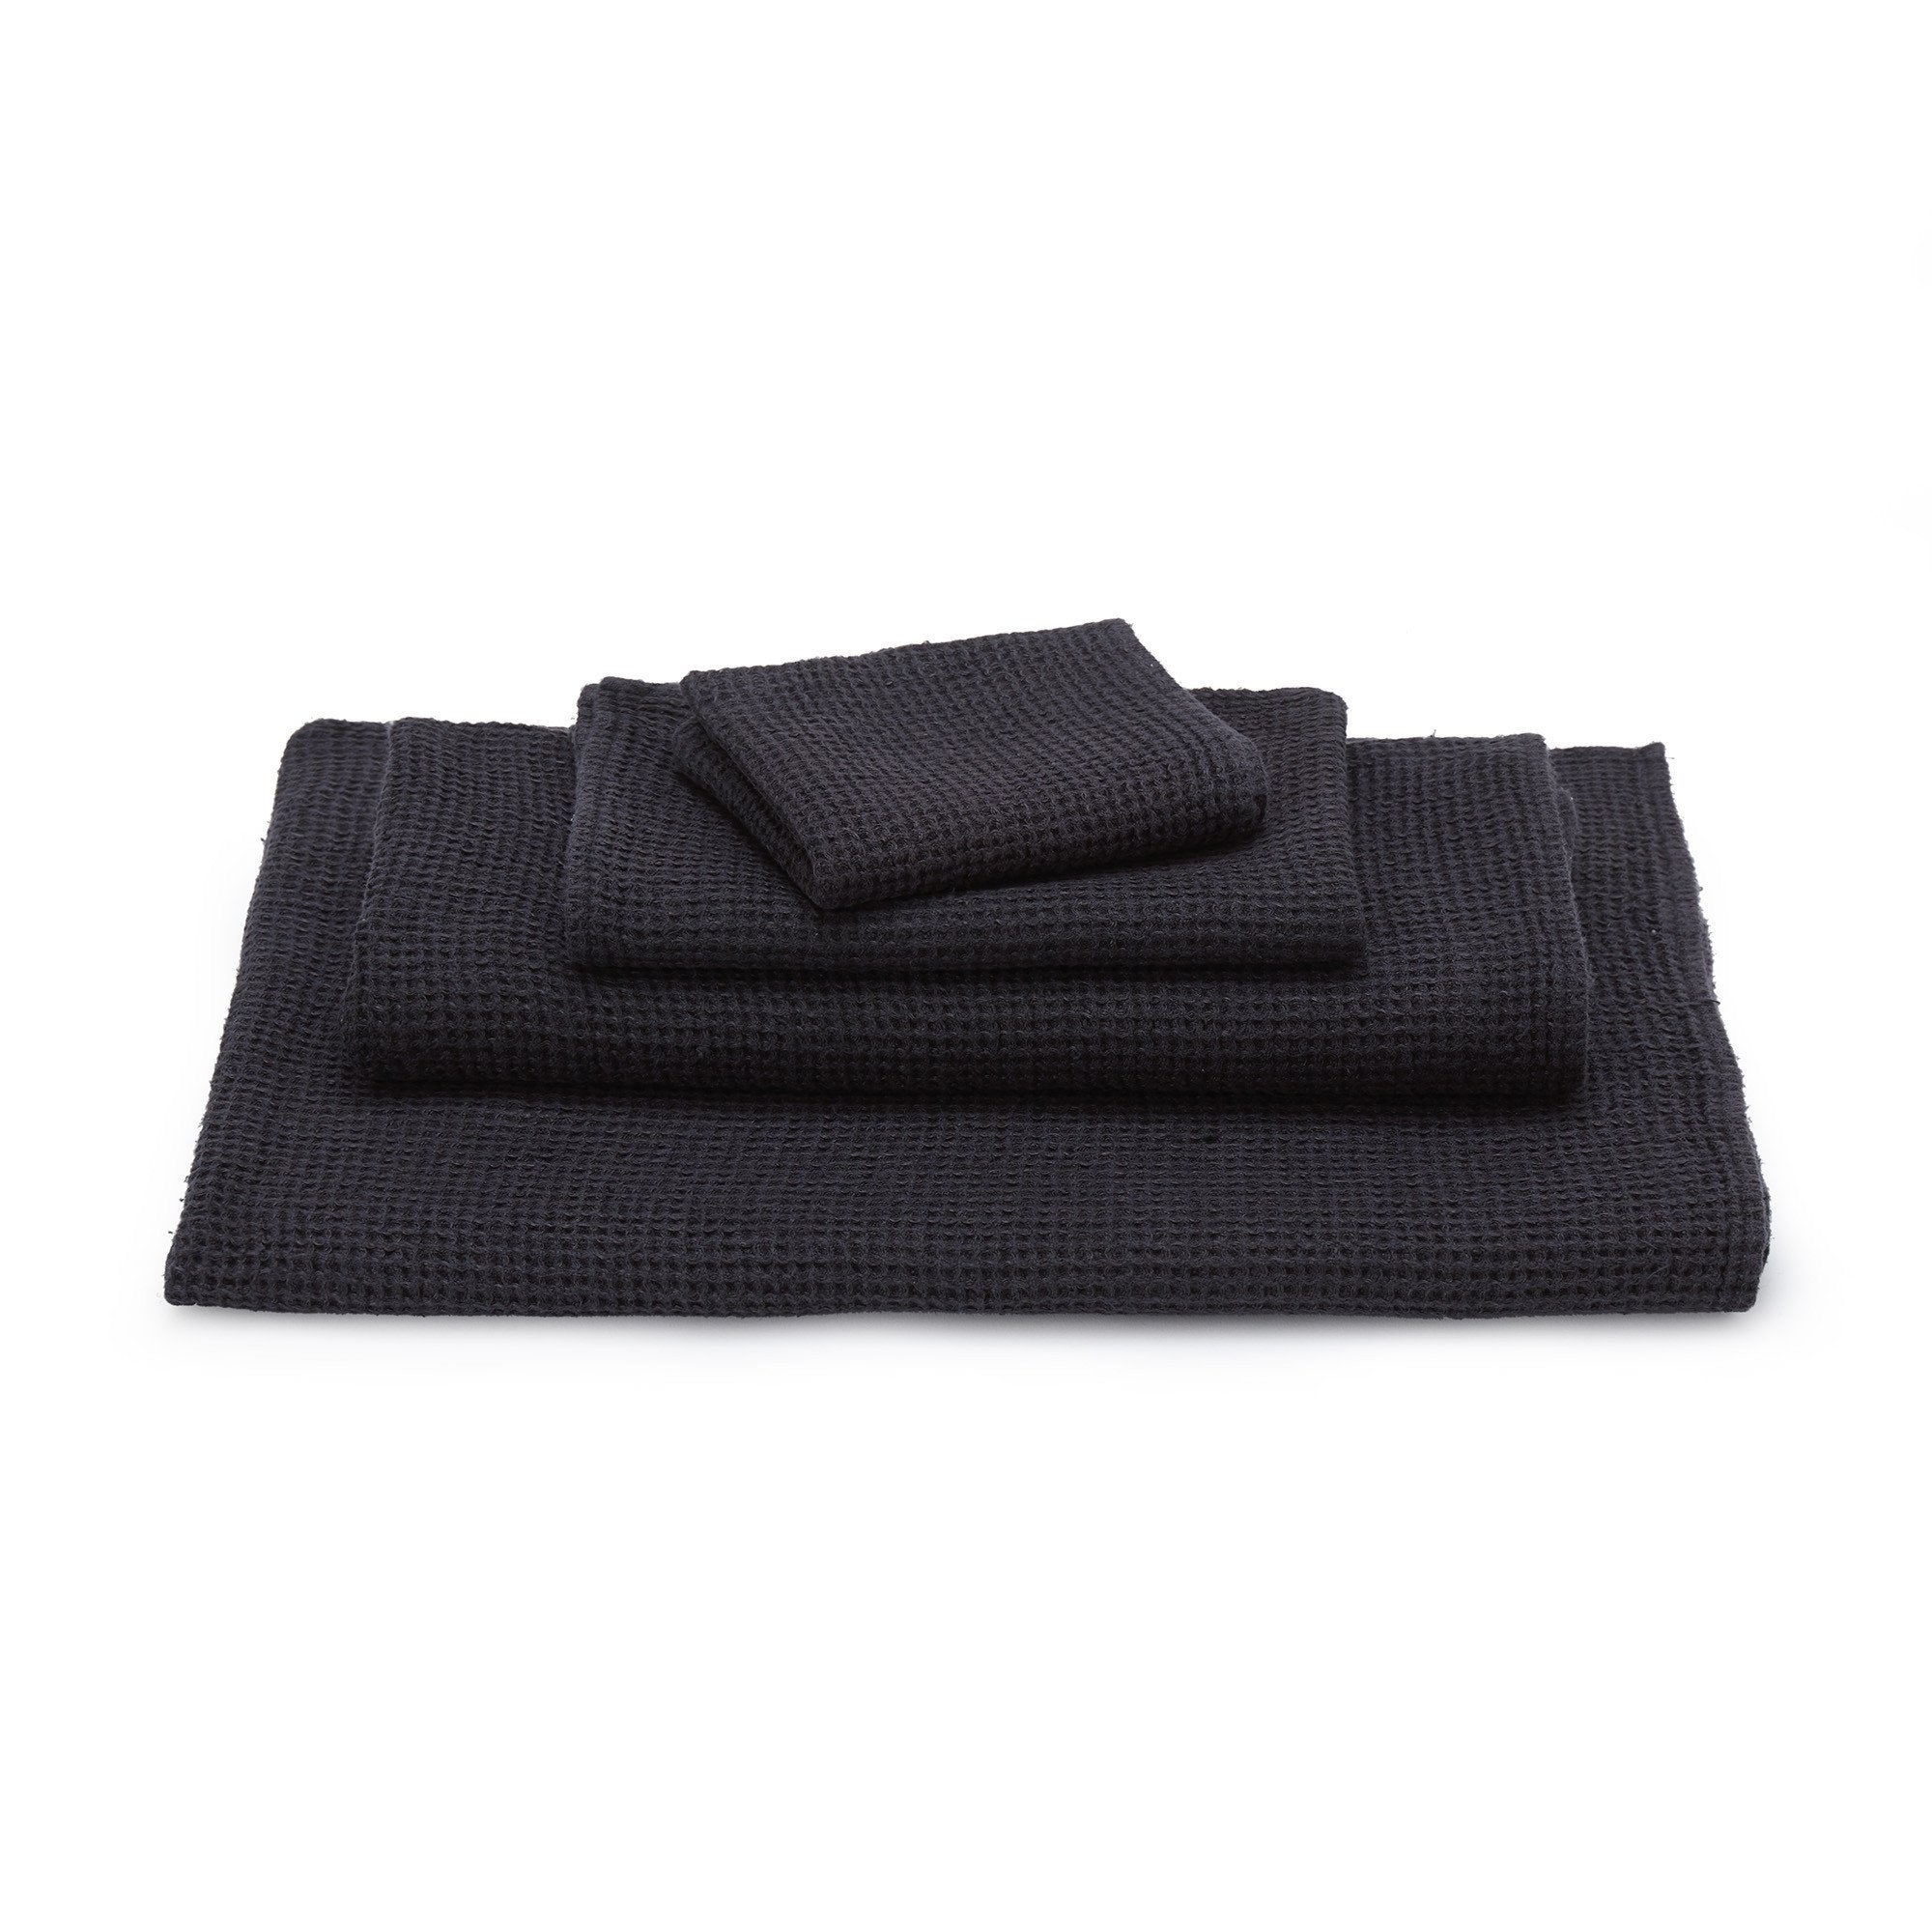 Neris hand towel, charcoal, 100% linen